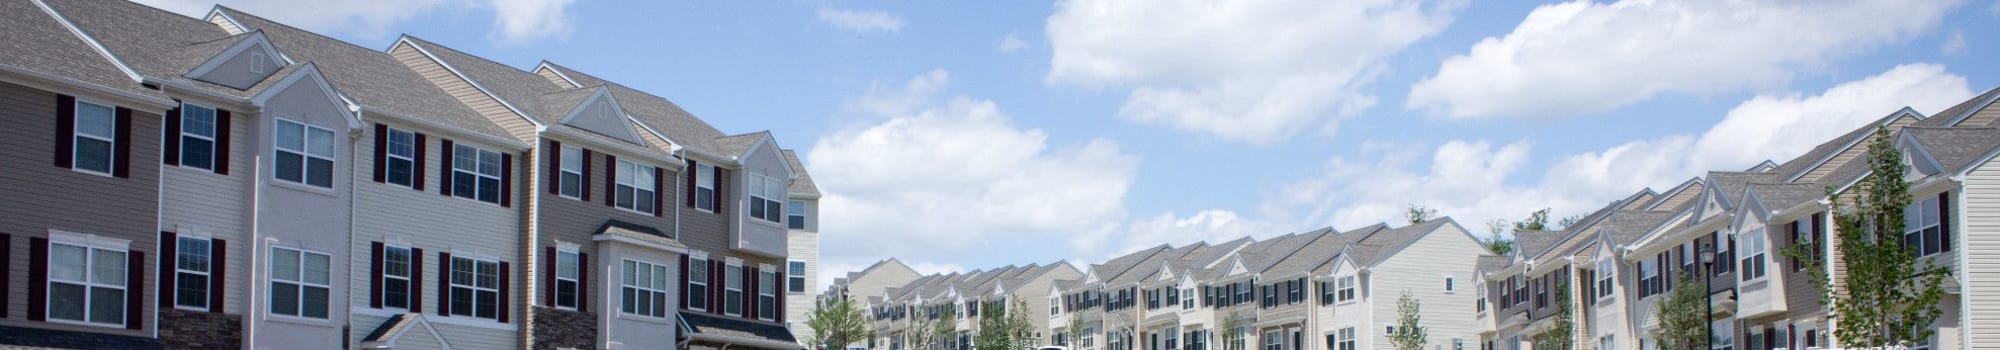 Take a look at Emerald Pointe Townhomes floor plans